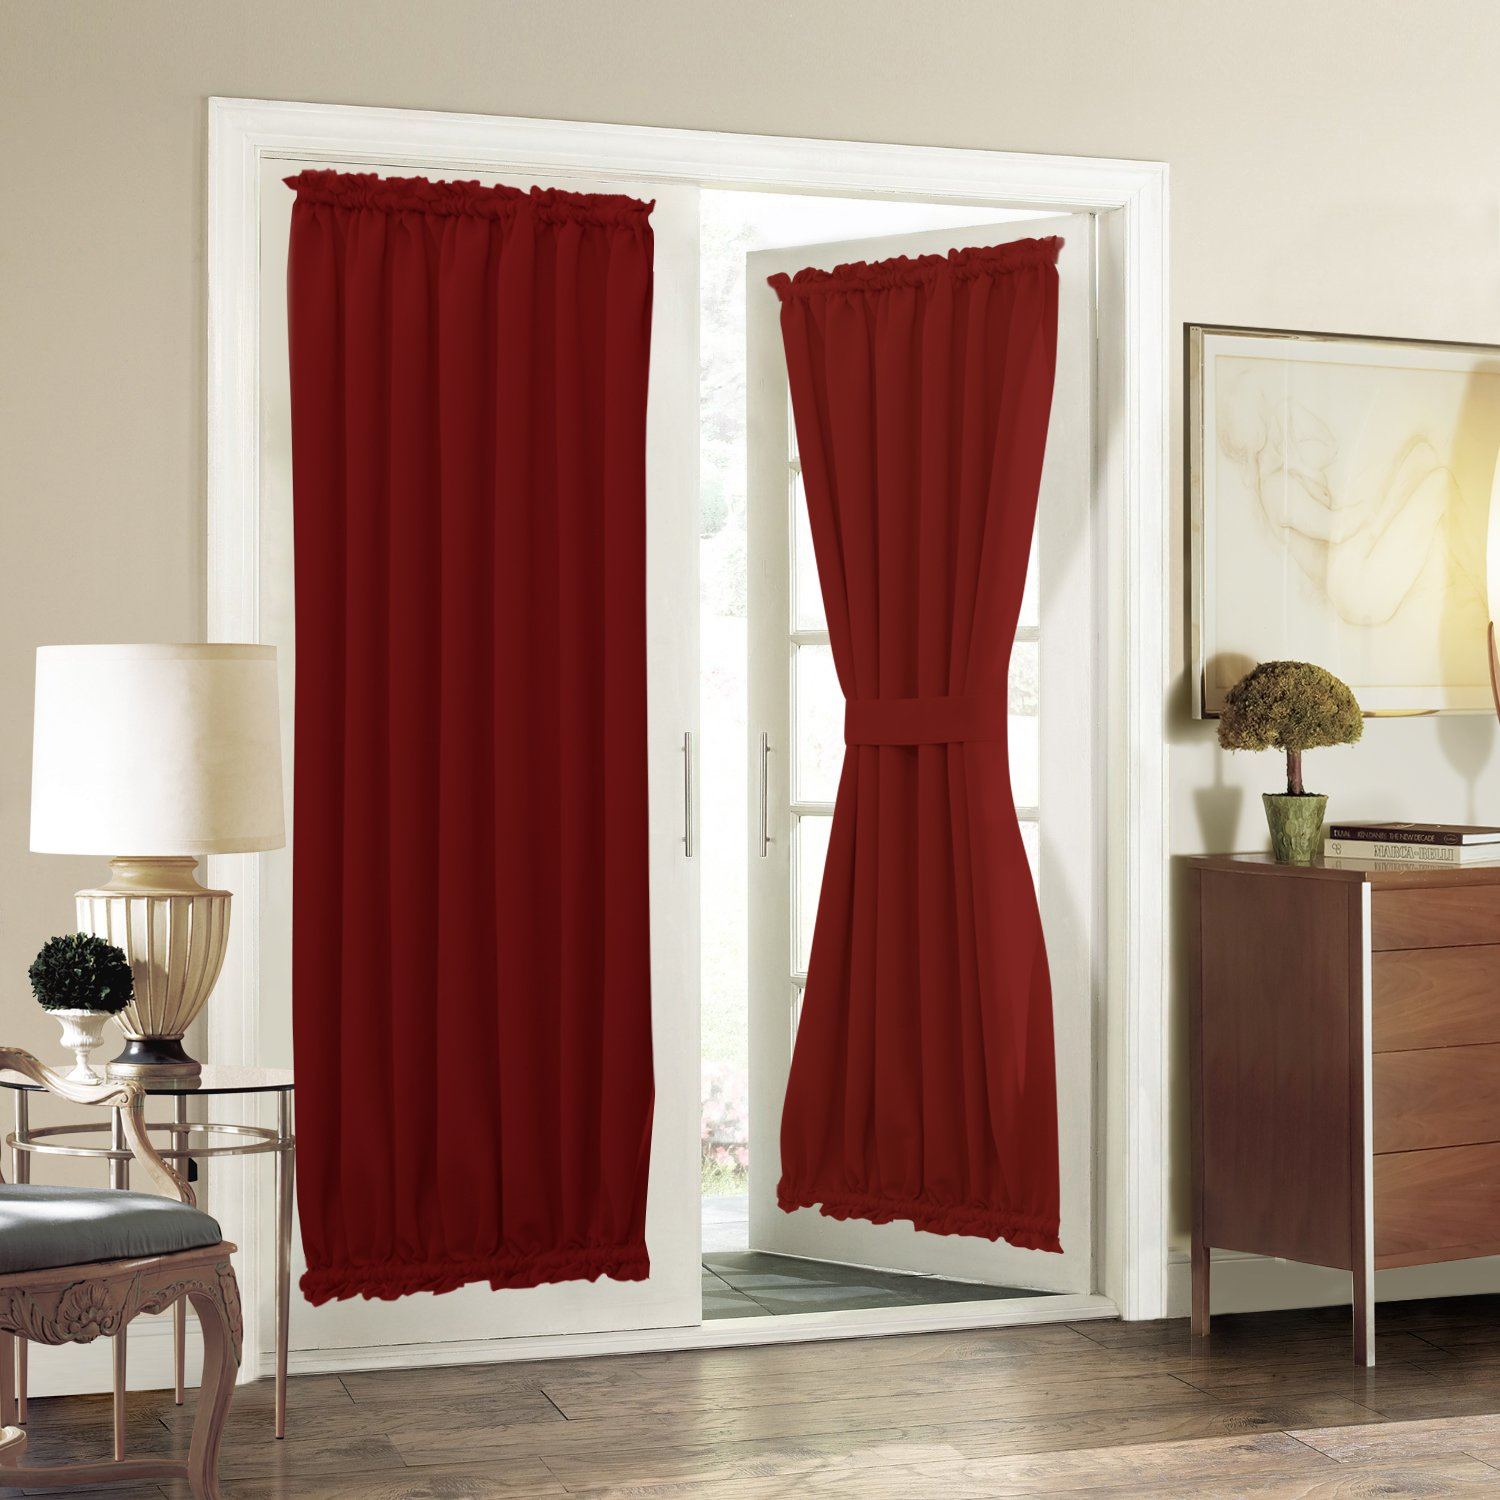 Door Panel Curtains : French door curtain panel for privacy aquazolax solid